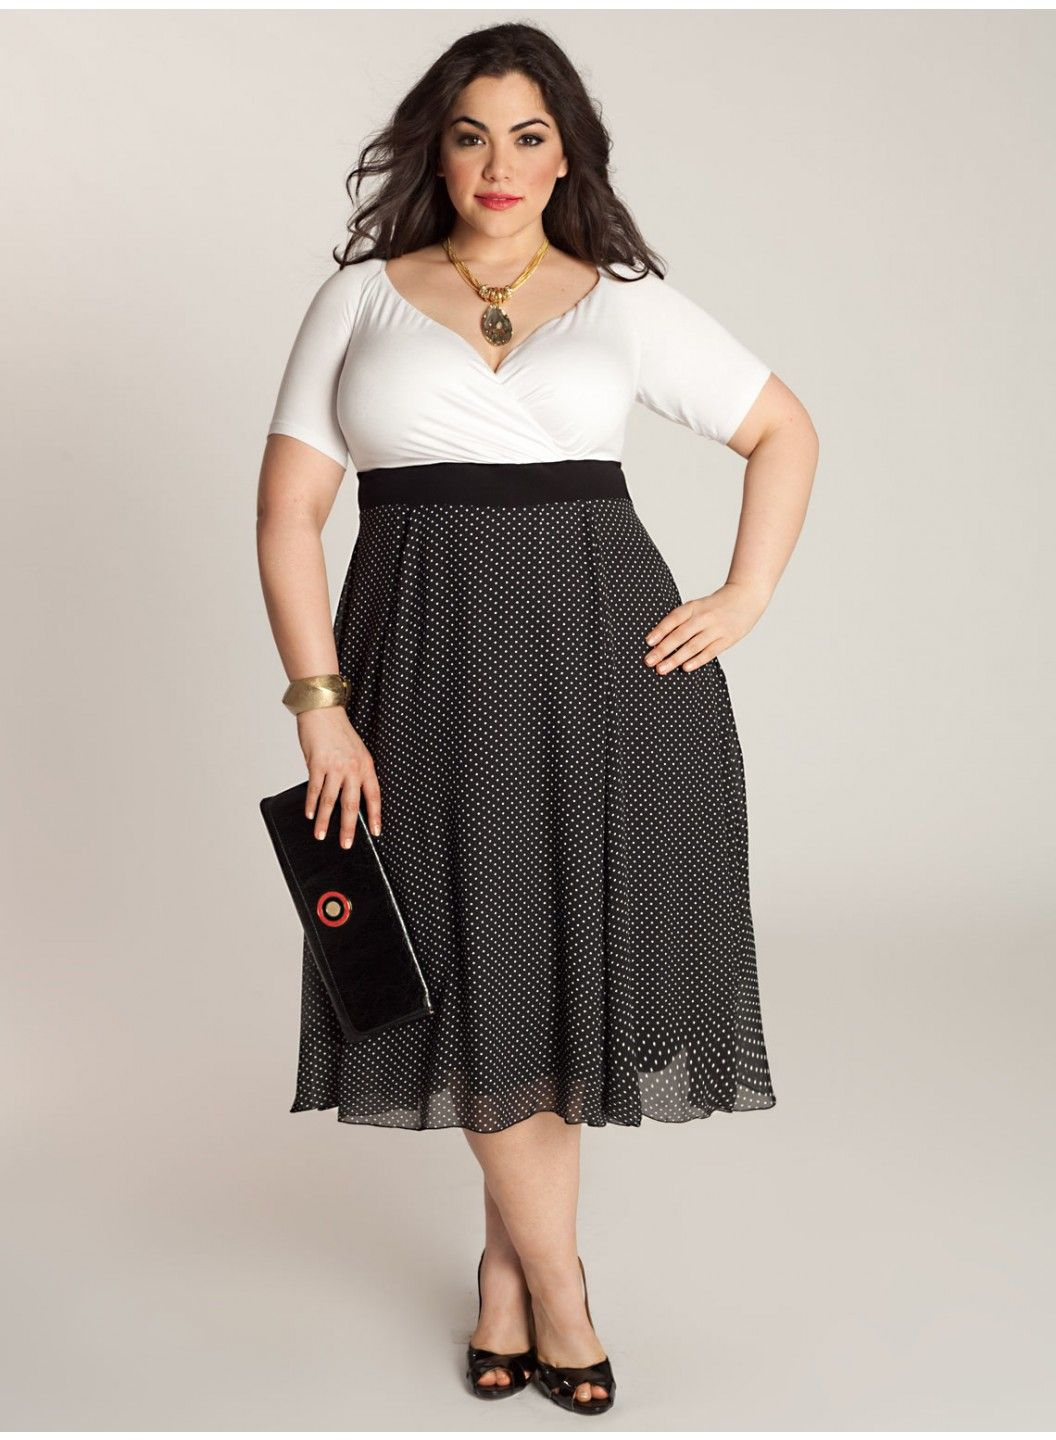 lovely plus size cocktail dresses : vintage polca best plus size